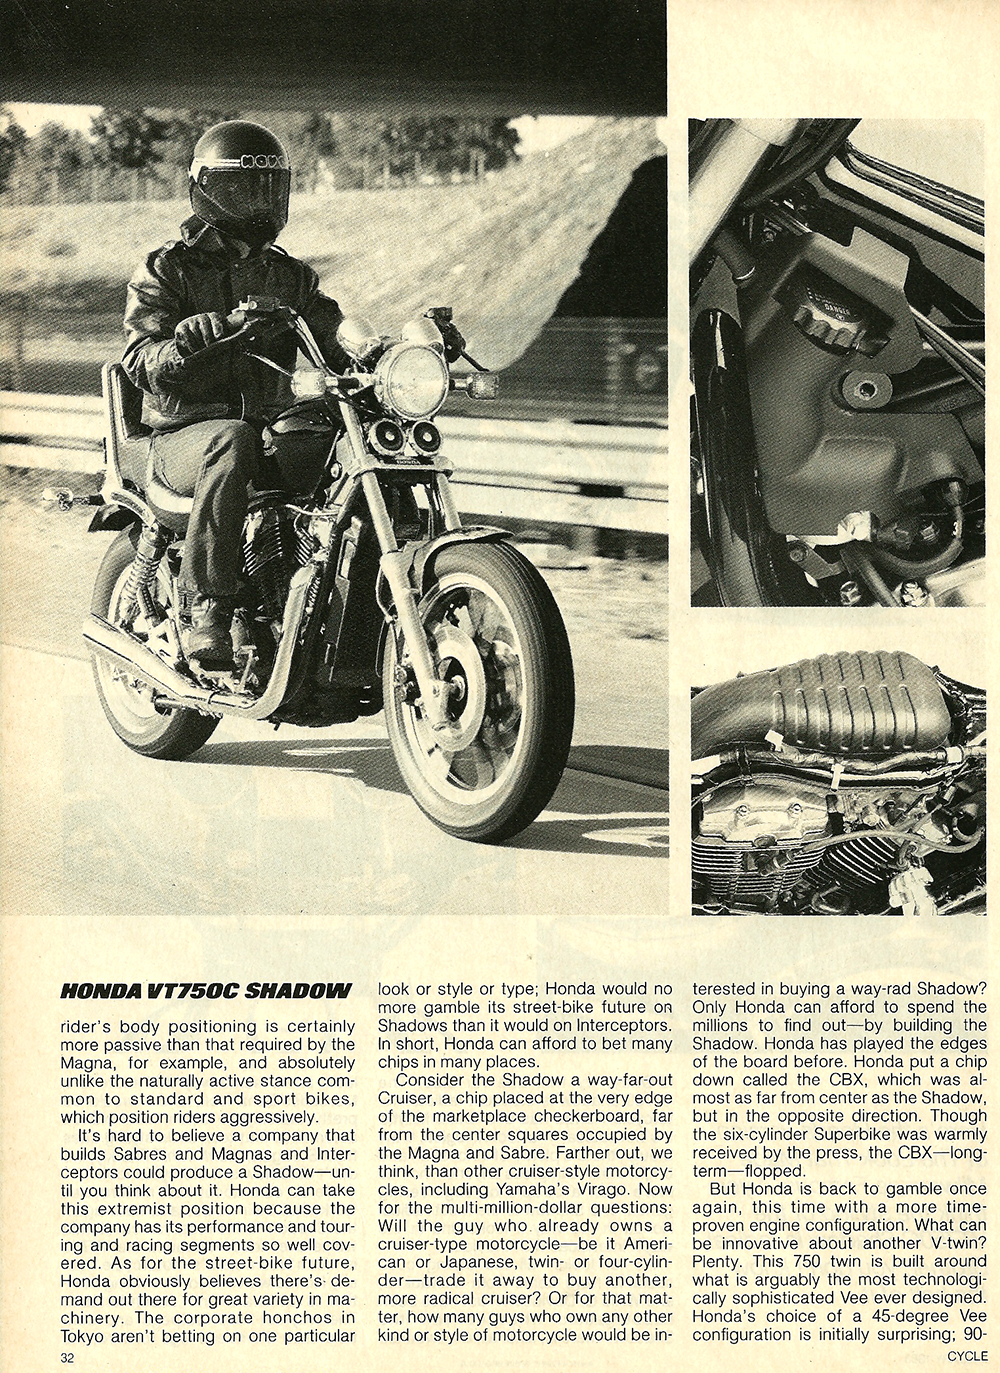 1983 Honda VT750C Shadow road test 3.jpg